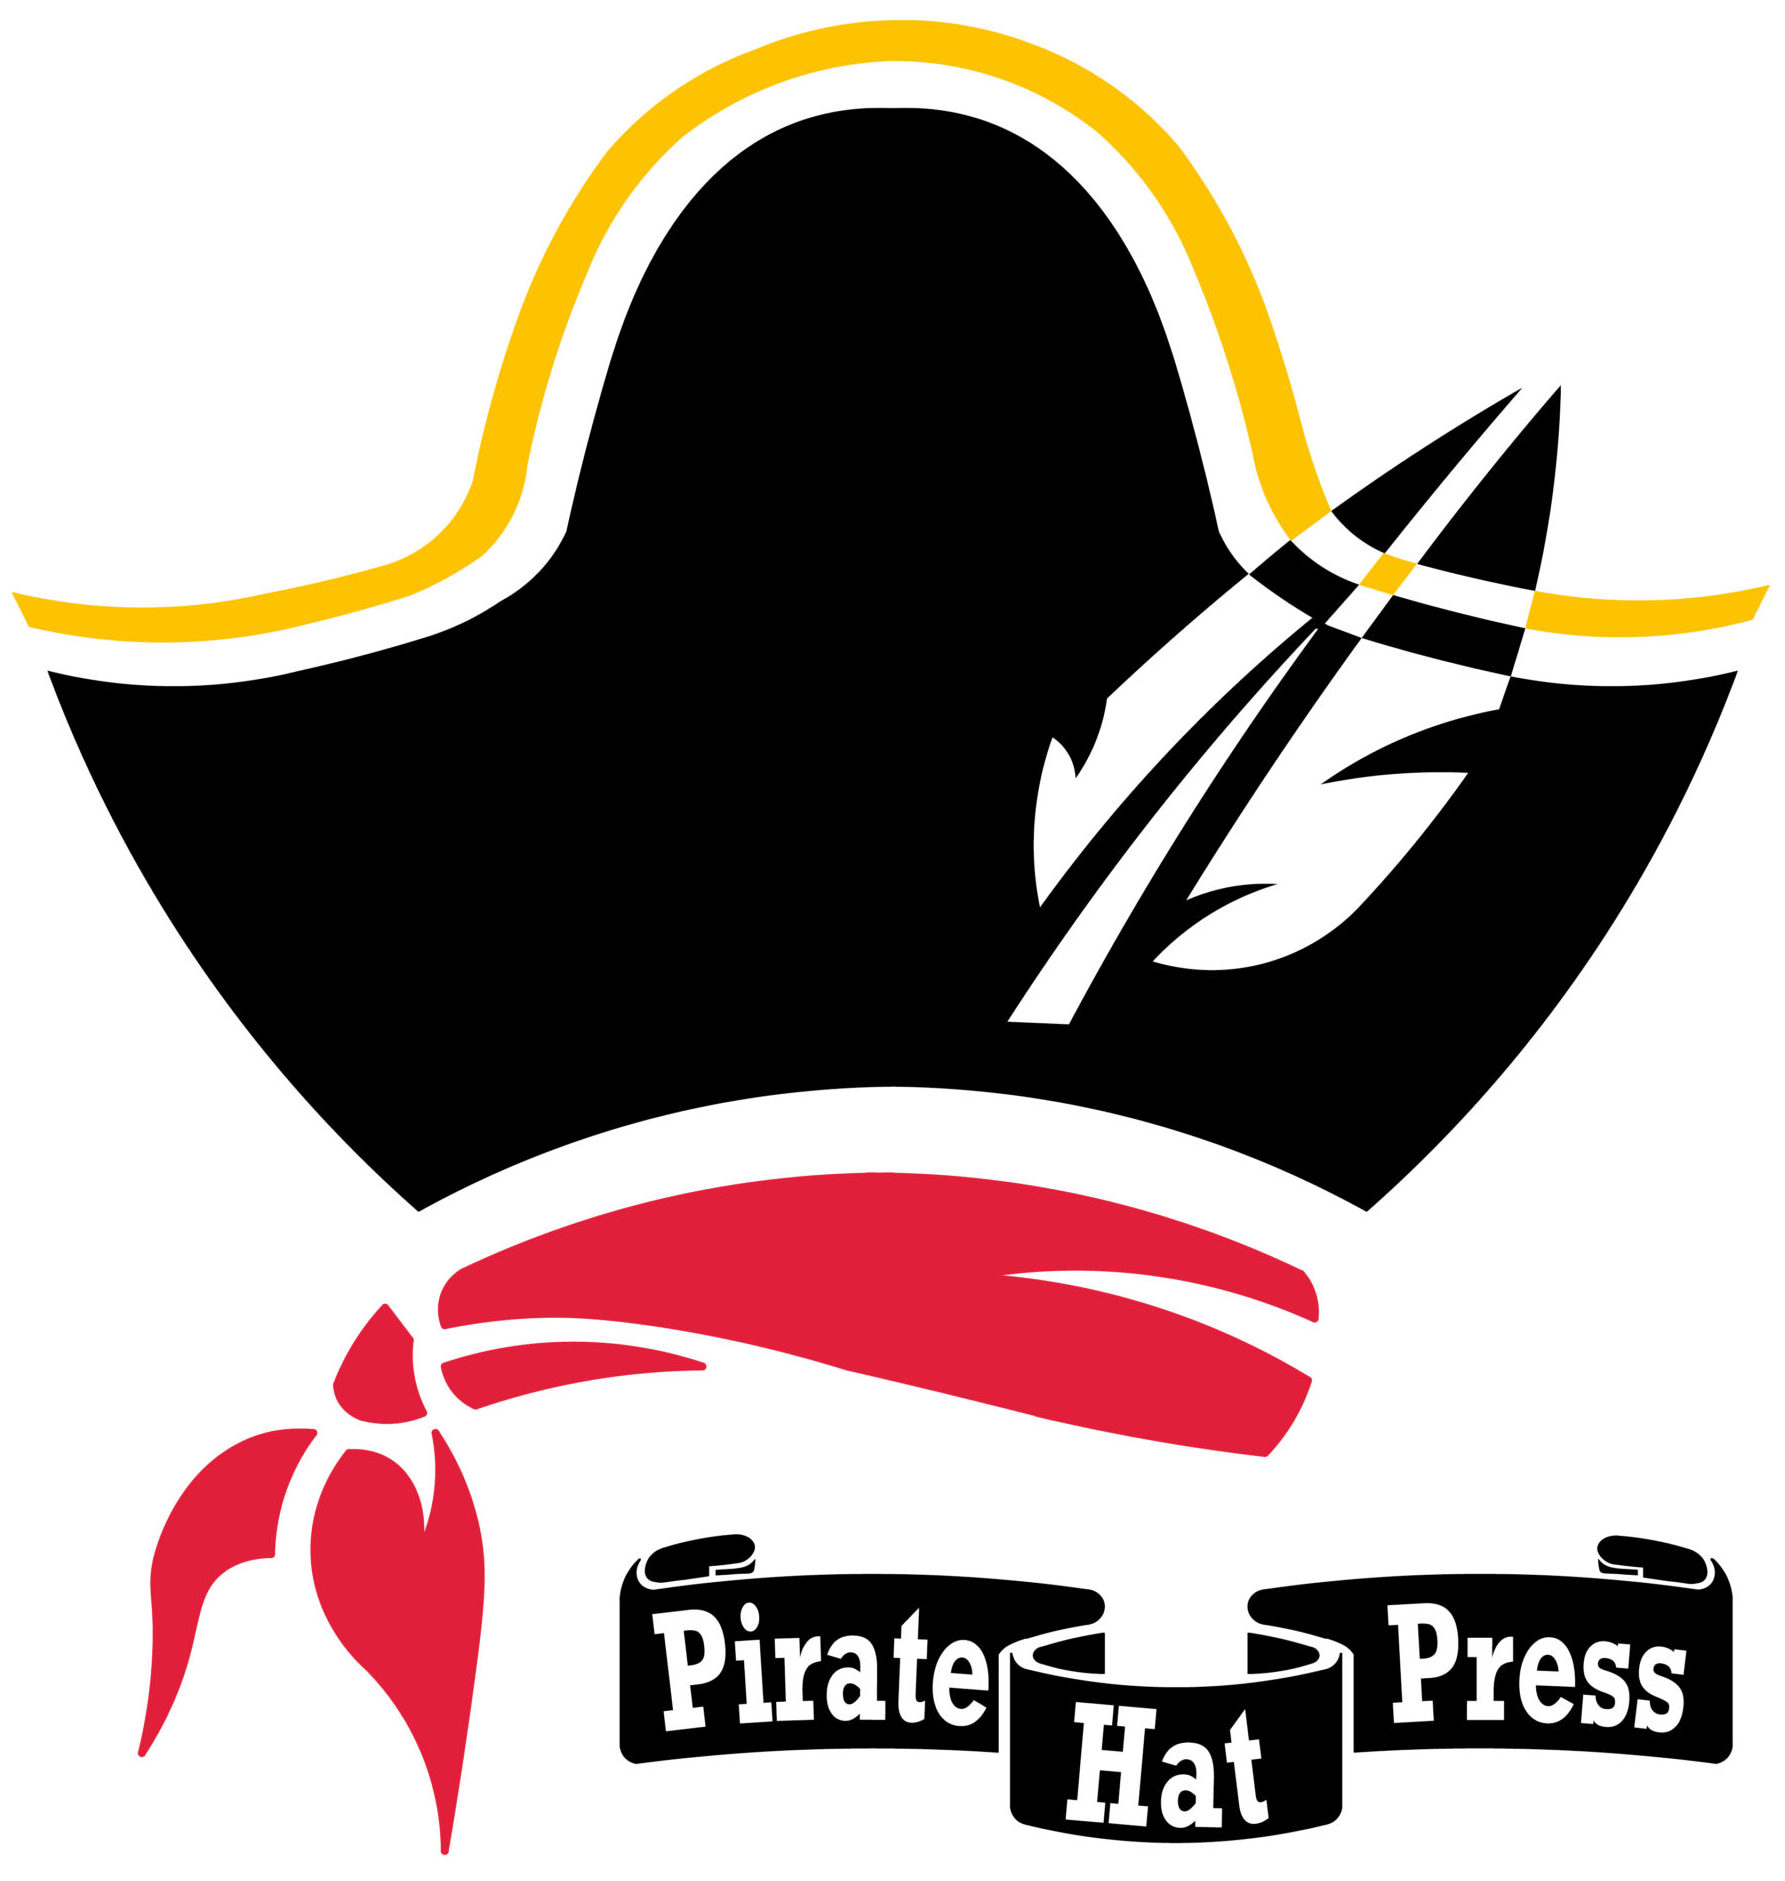 an illustrated logo of a pirate hat and a red scarf, below which is a black scroll with white text that reads Pirate Hat Press